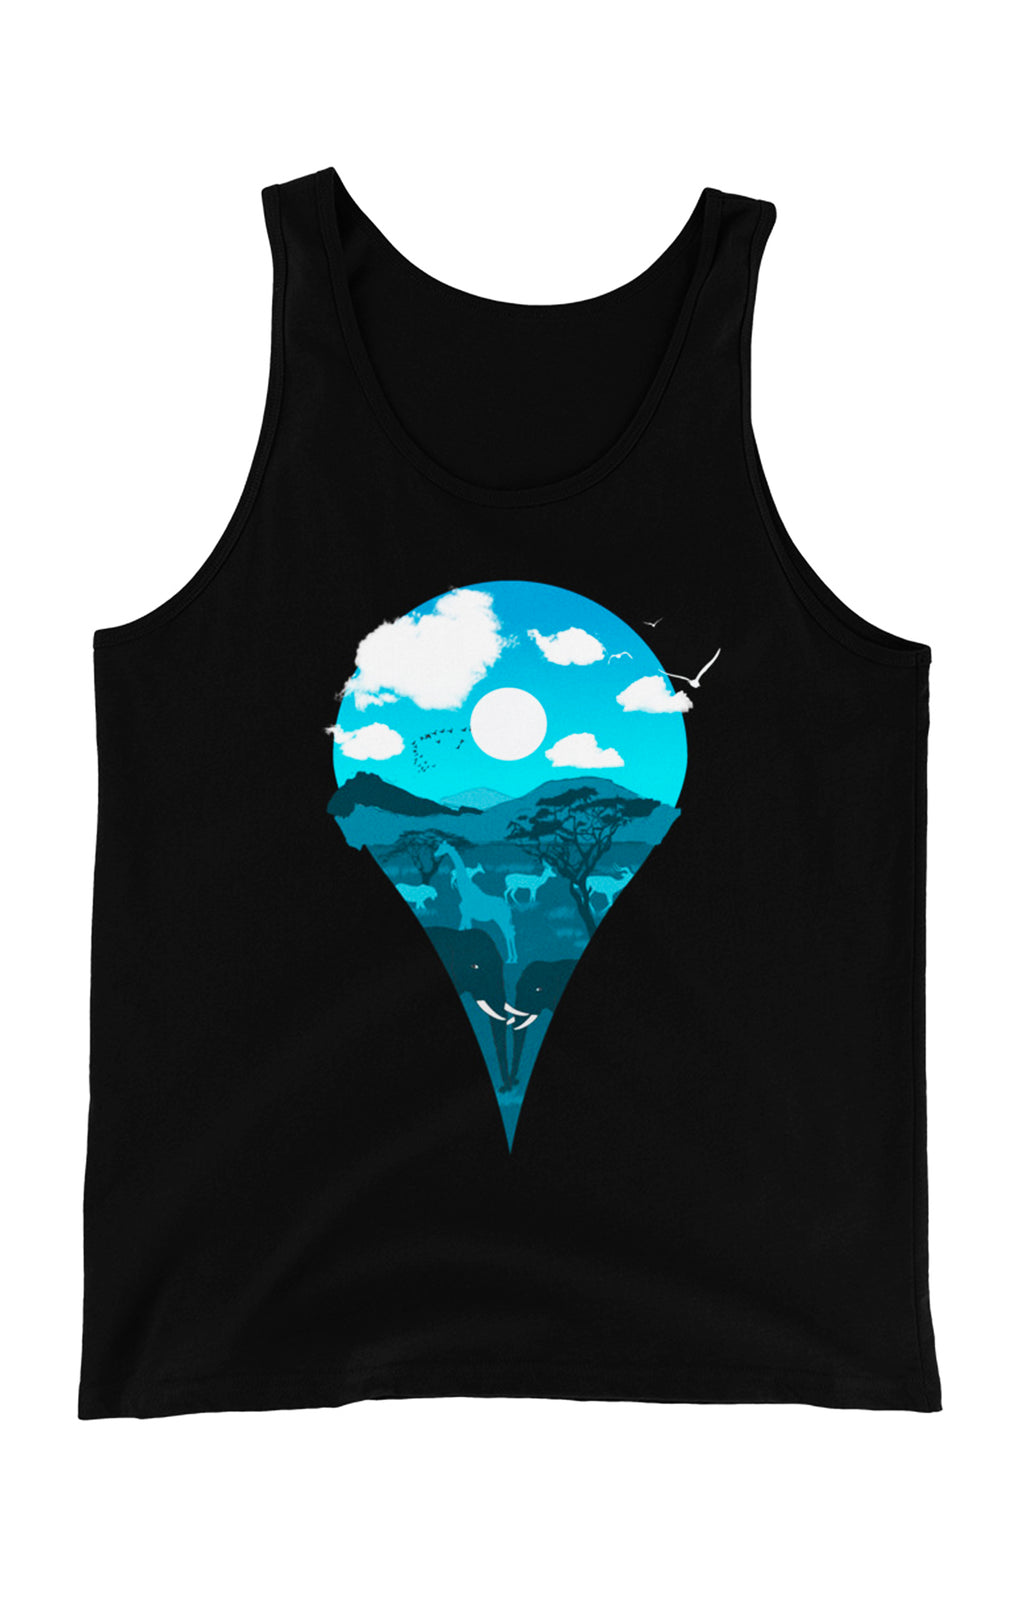 Location Marker Unisex Tank Top (Night)